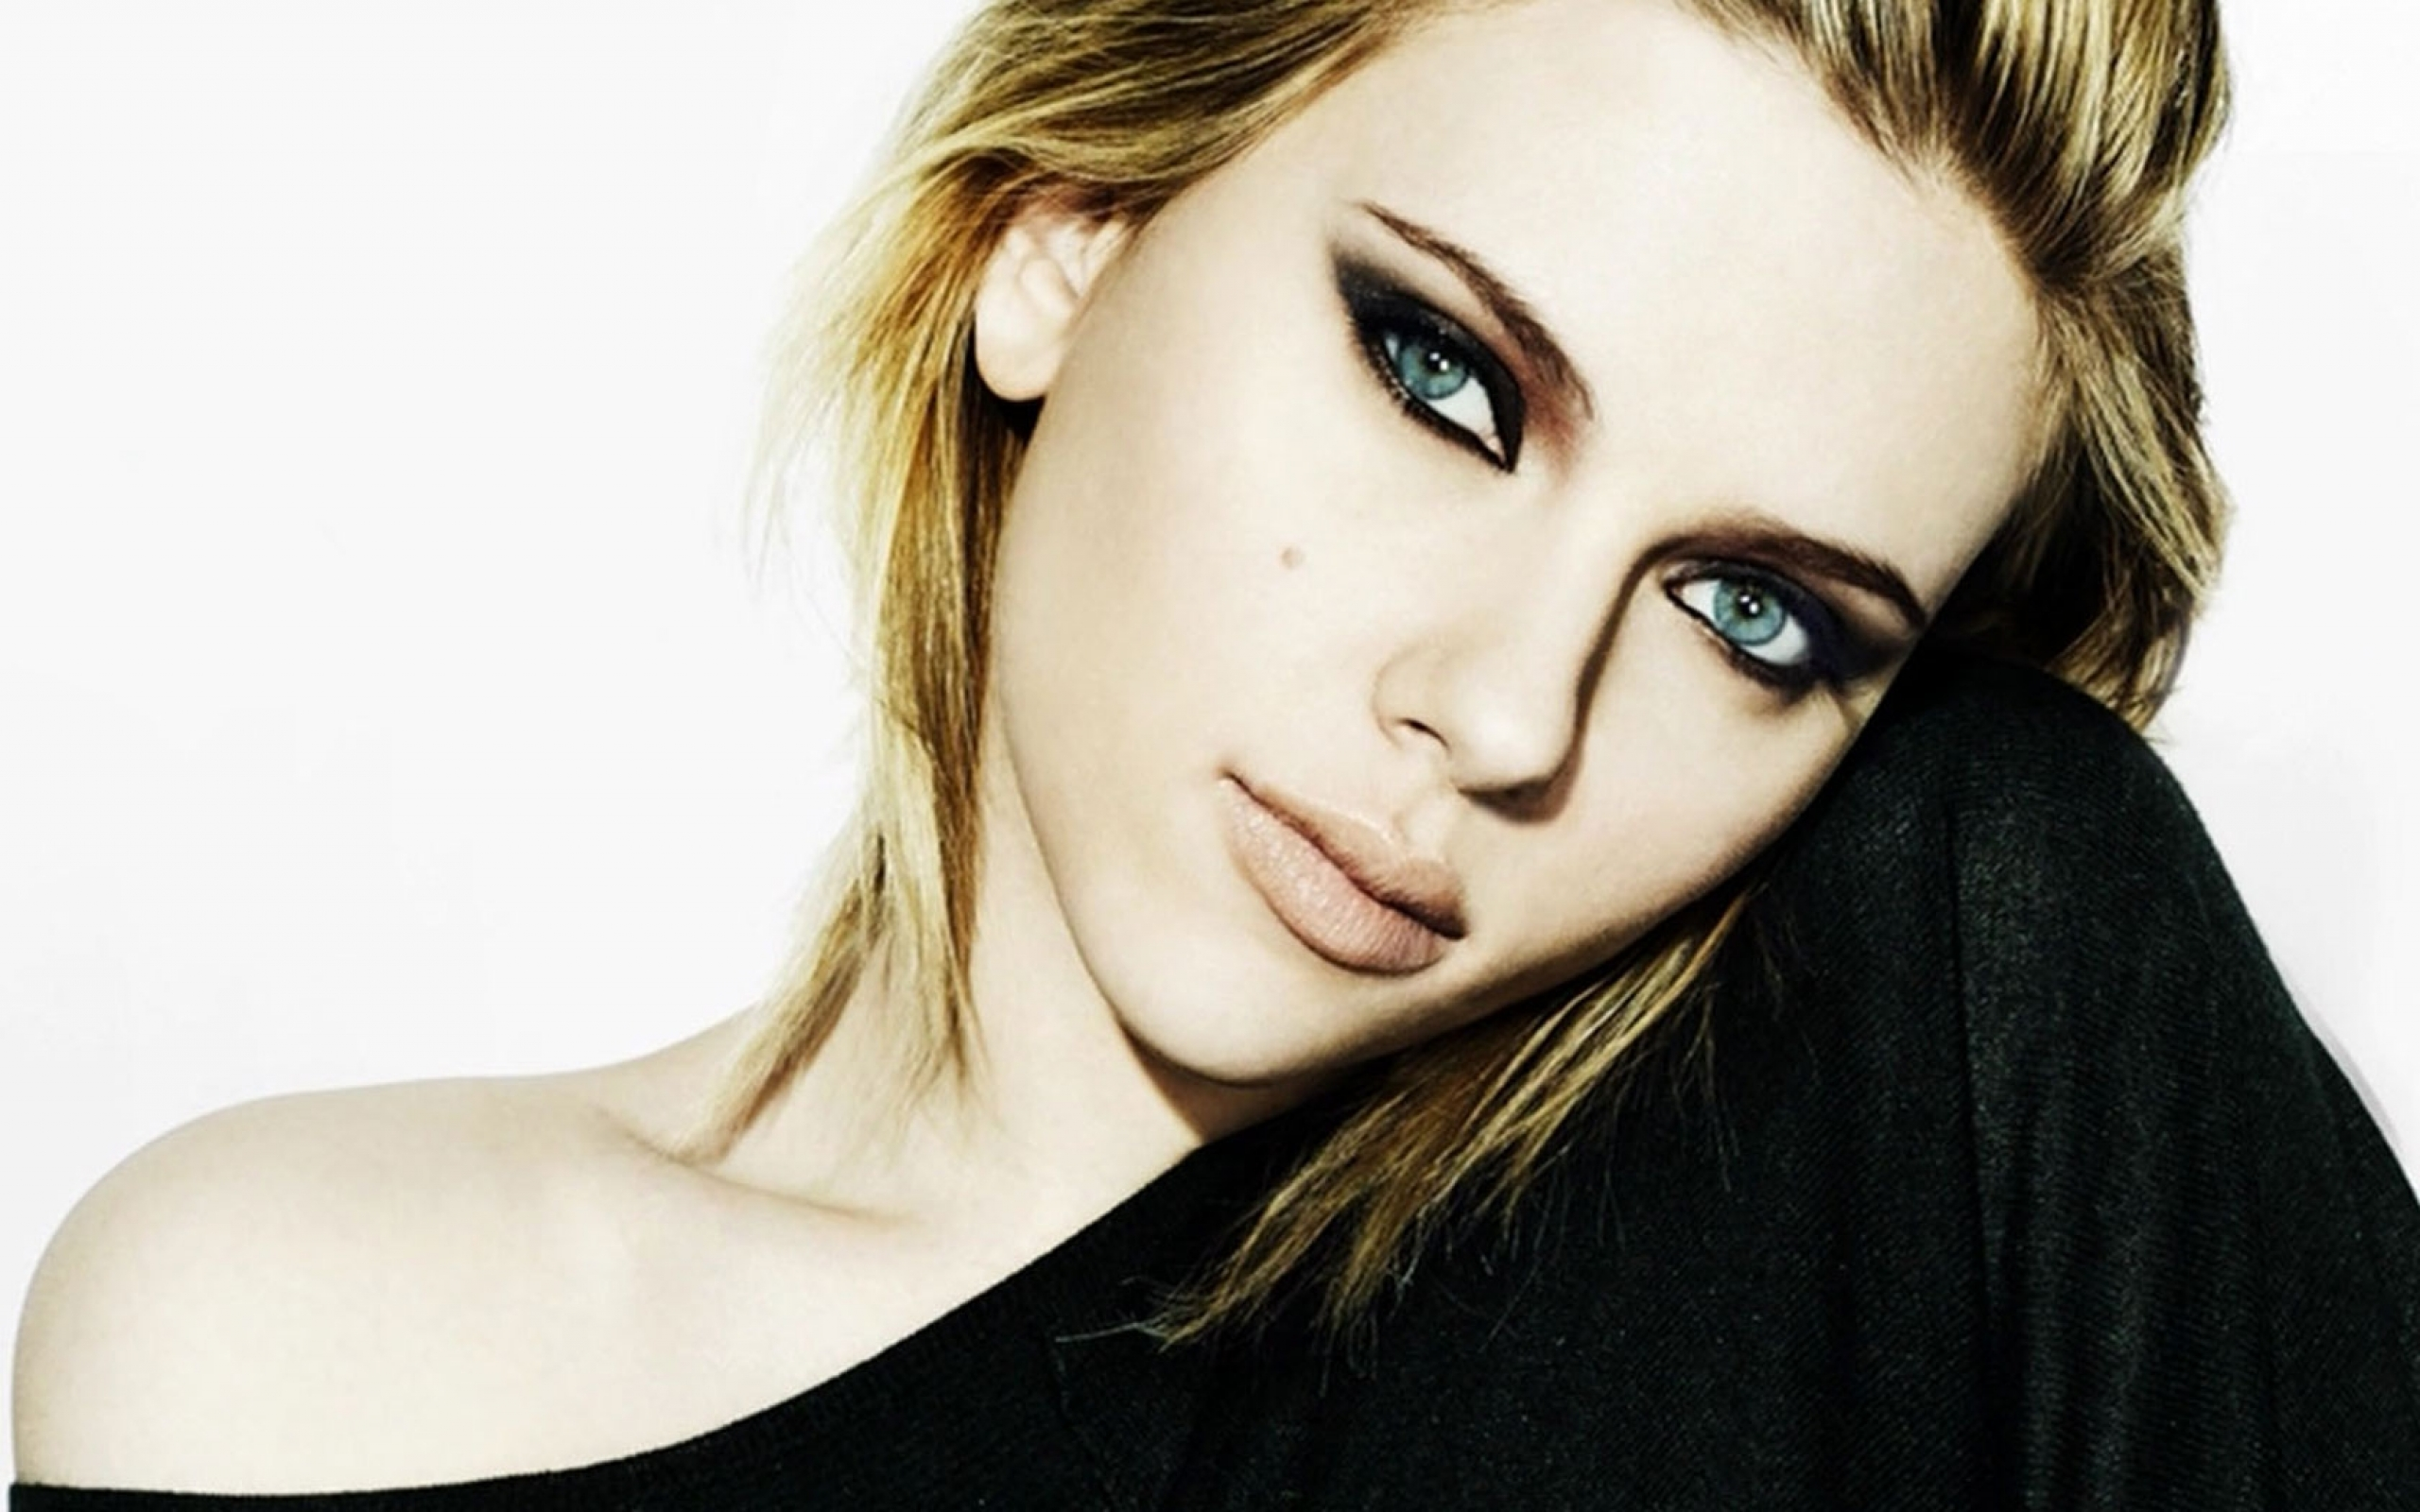 Scarlett Johansson Wallpaper: Scarlett Johansson Wallpapers High Resolution And Quality